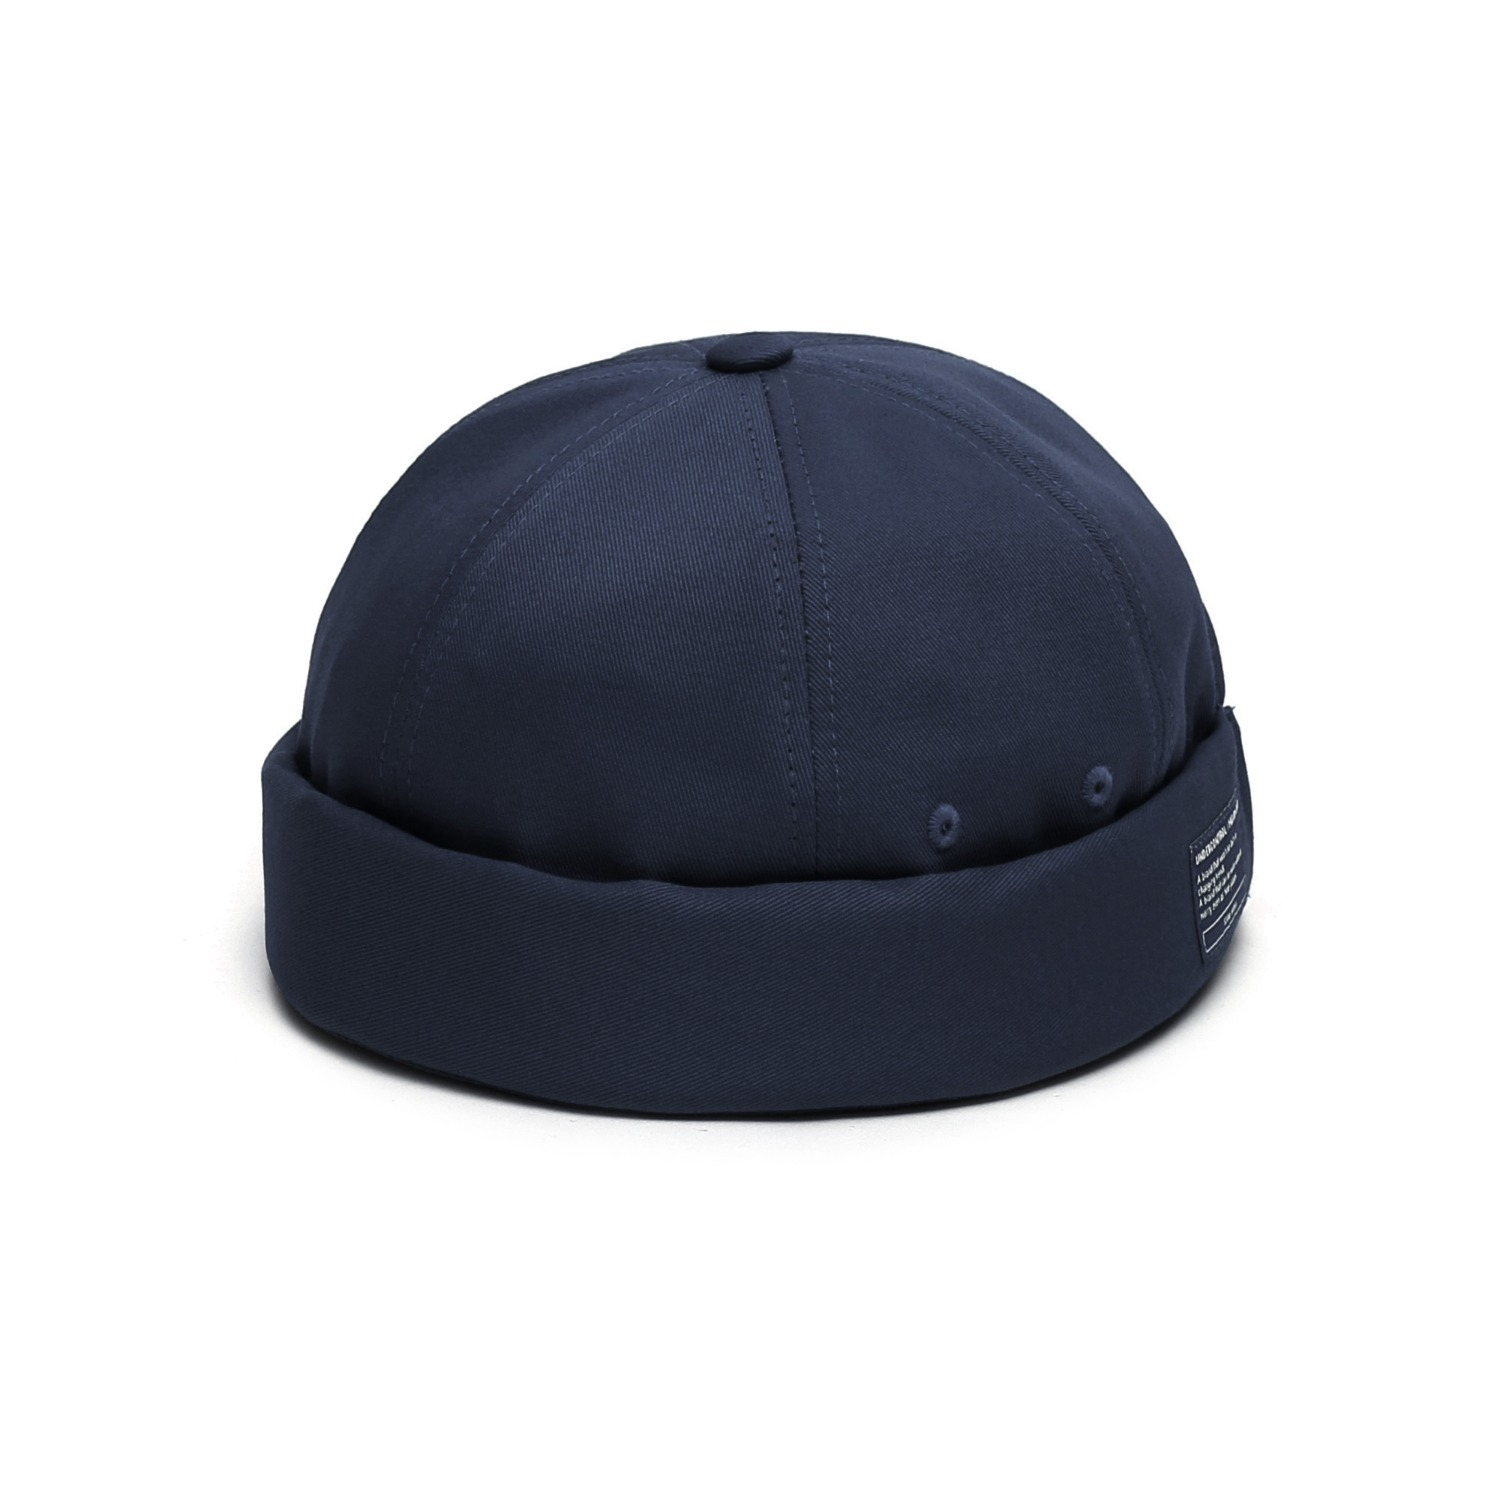 MOLD CAP / TWILL COTTON / NAVY